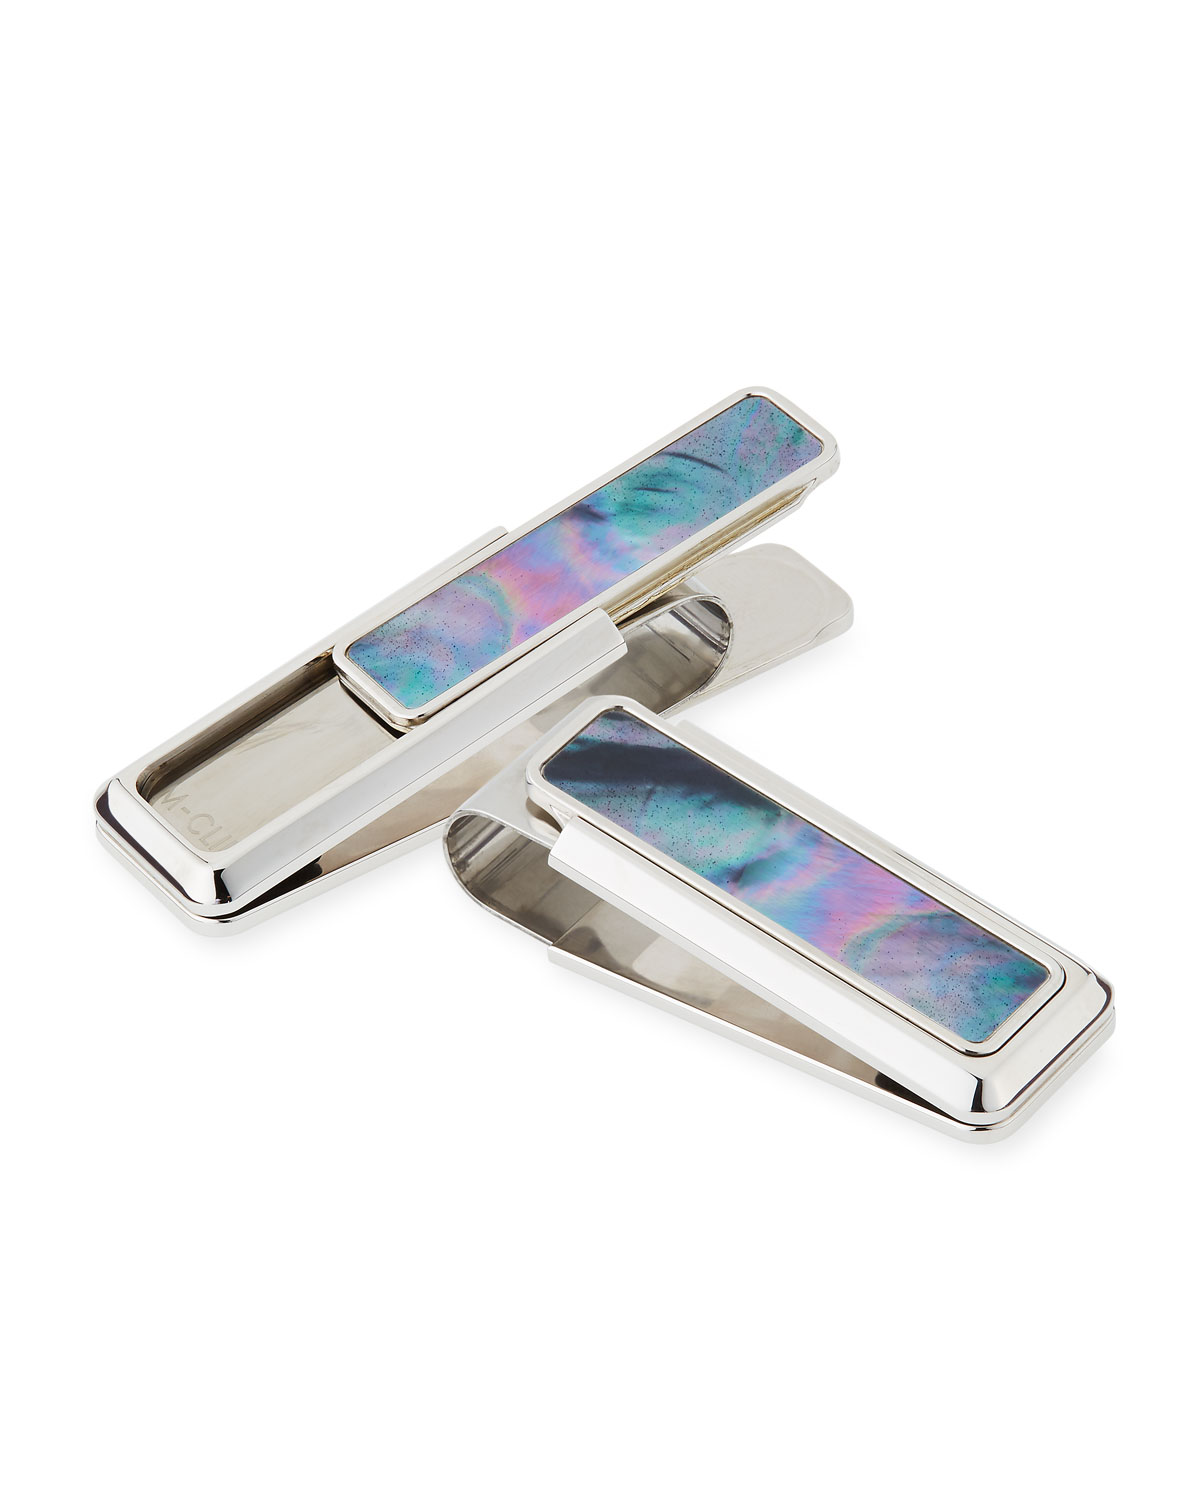 M Clip Mother-of-Pearl Stainless Steel Money Clip